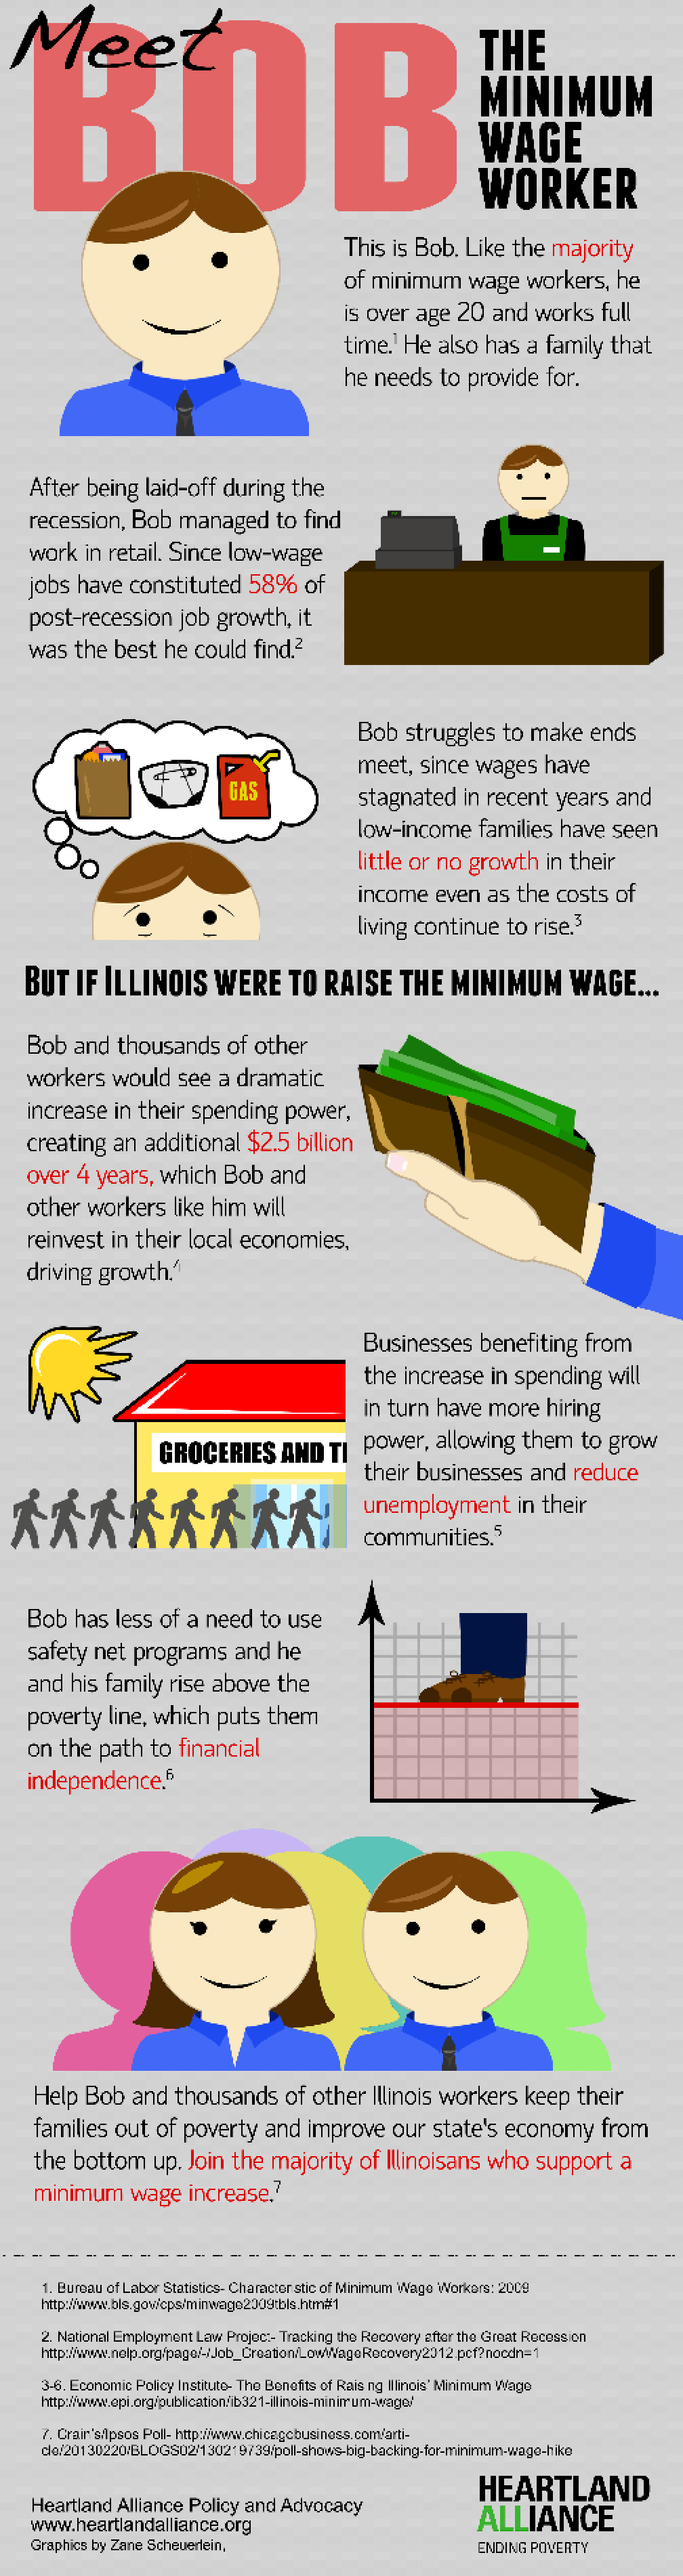 Infographic: Meet Bob, the Minimum Wage Worker